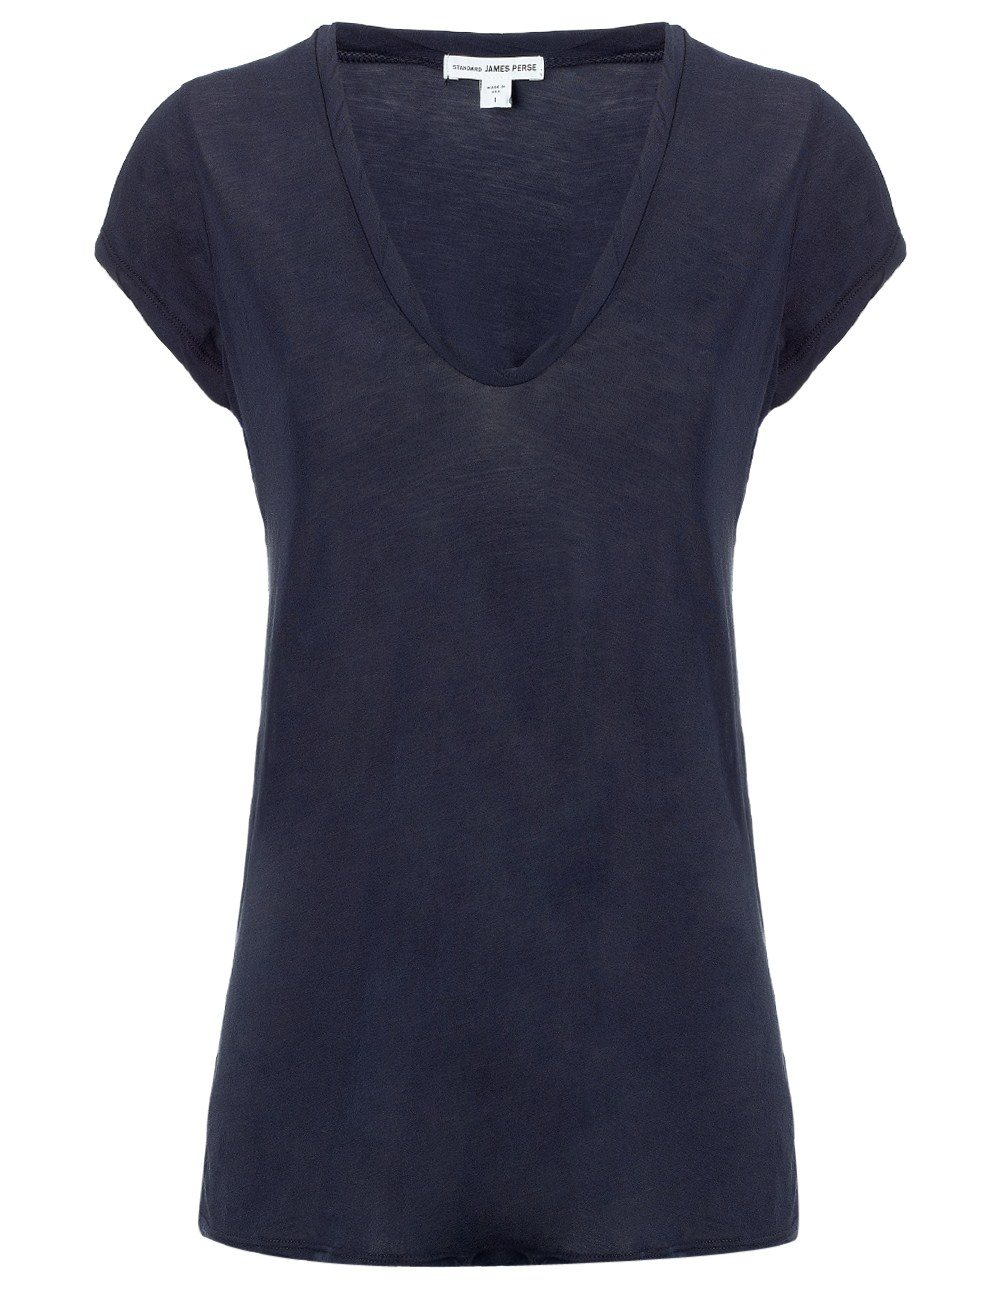 James perse navy jersey high gauge t shirt in blue navy for James perse t shirts sale